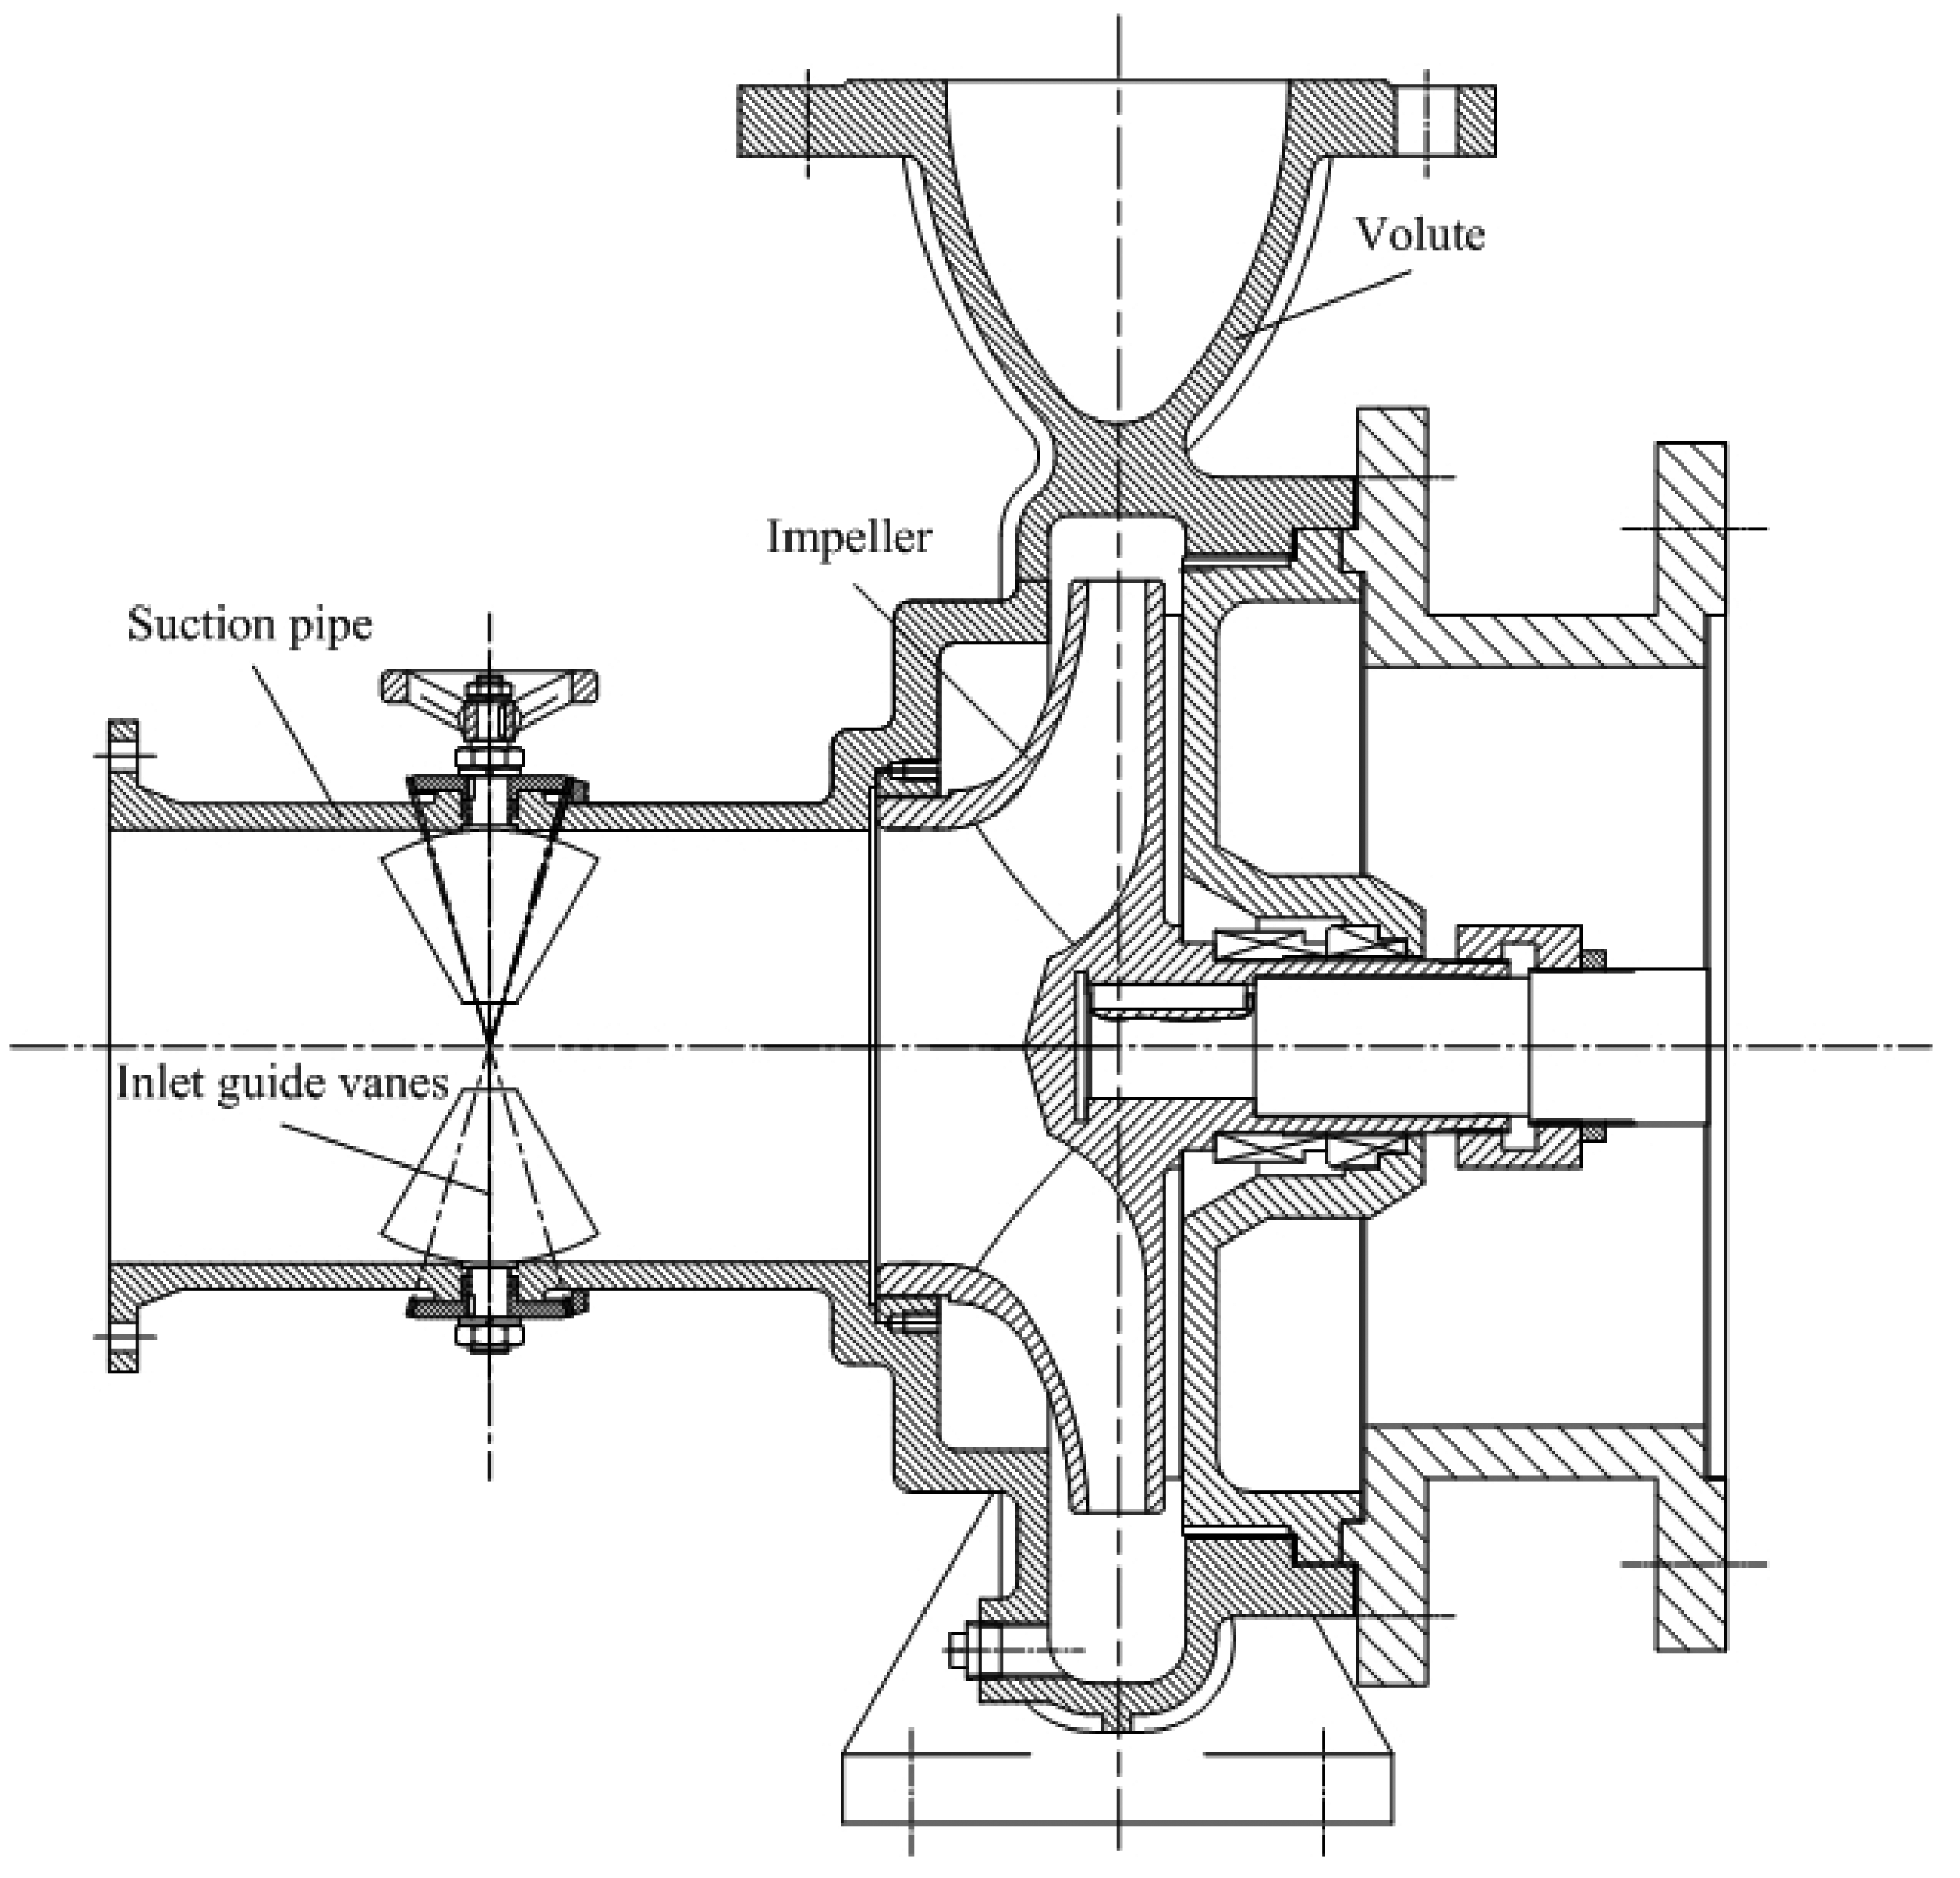 cavitation in centrifugal pumps Cavitation appearing centrifugal pump - duration: 1:04 andreas opdahl haug 71,794 views 1:04 cavitation & net positive suction head available.